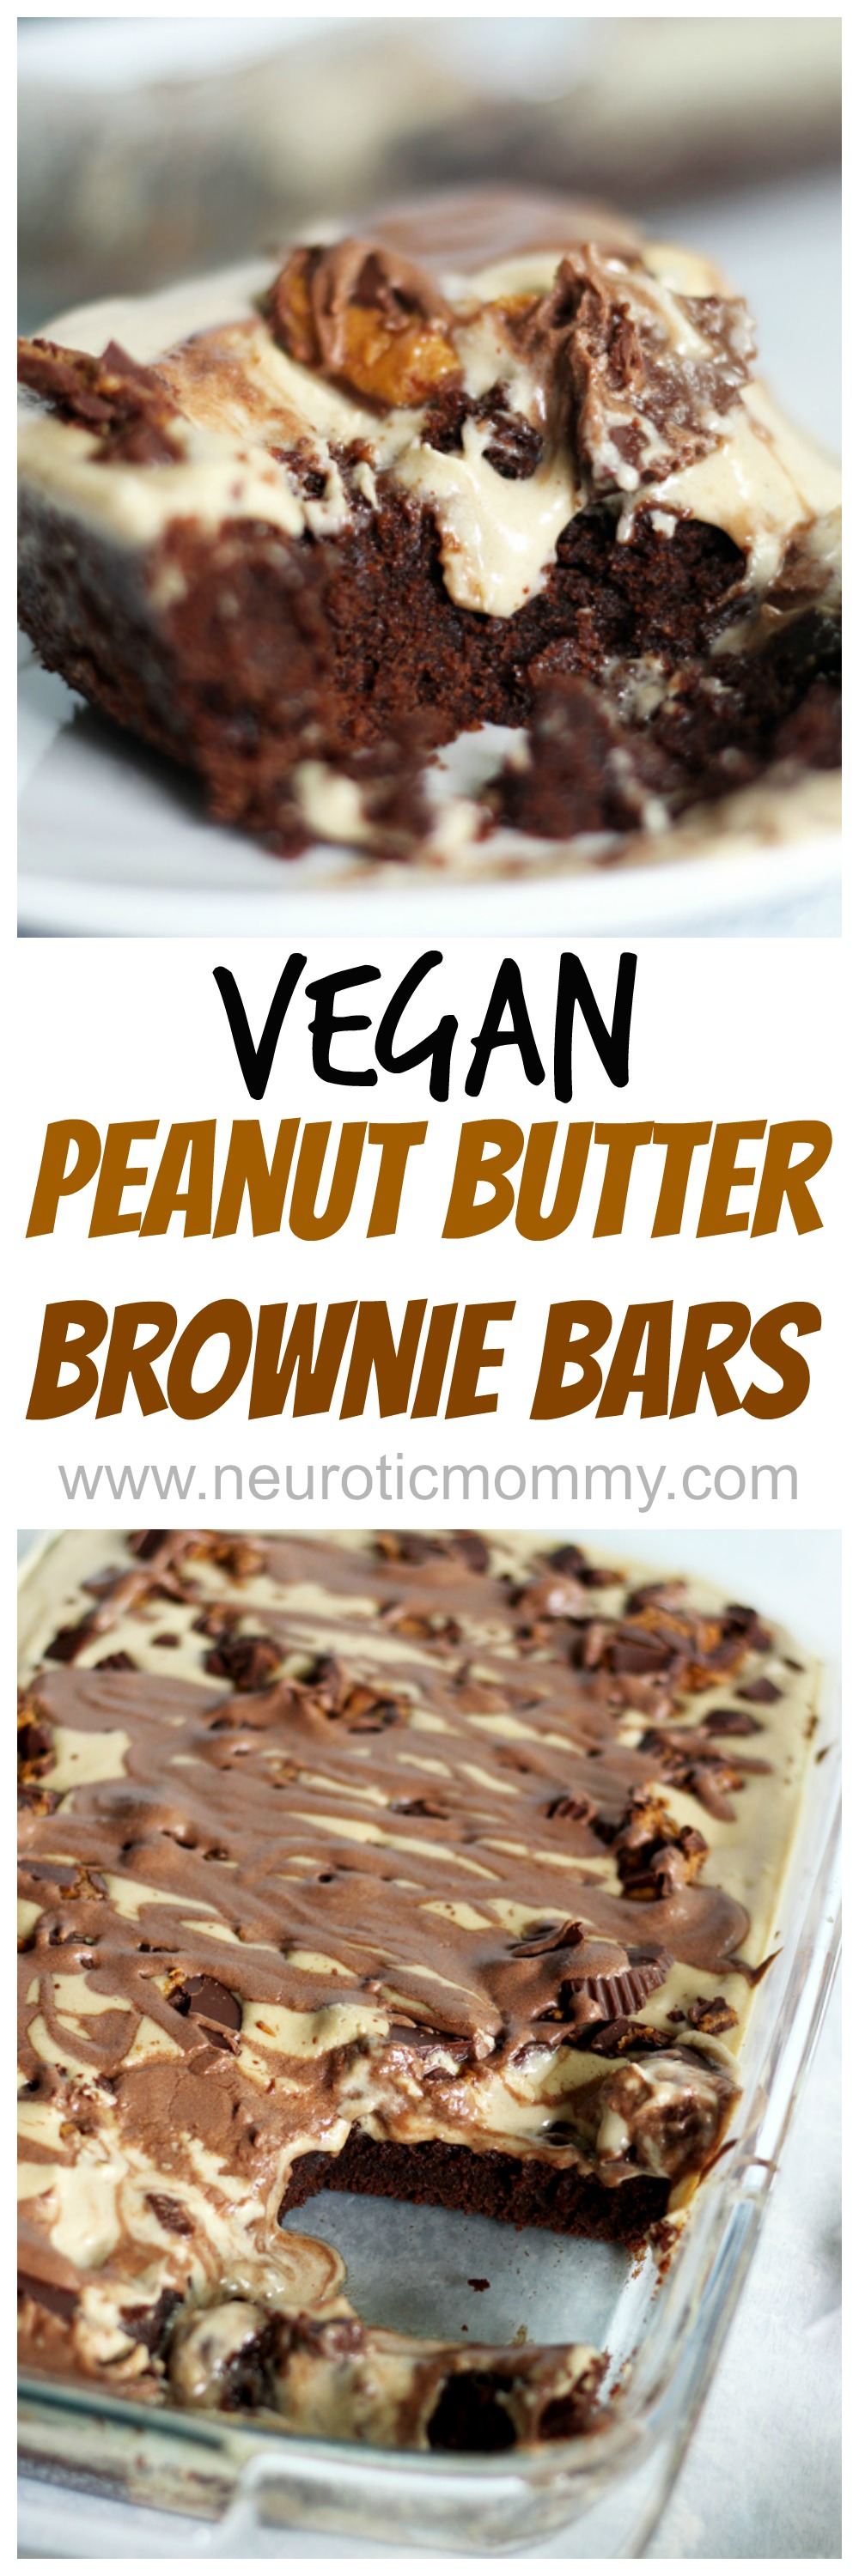 Peanut Butter Brownie Bars - super chocolatey, peanut butter goodness. NeuroticMommy.com #vegan #snacks #desserts